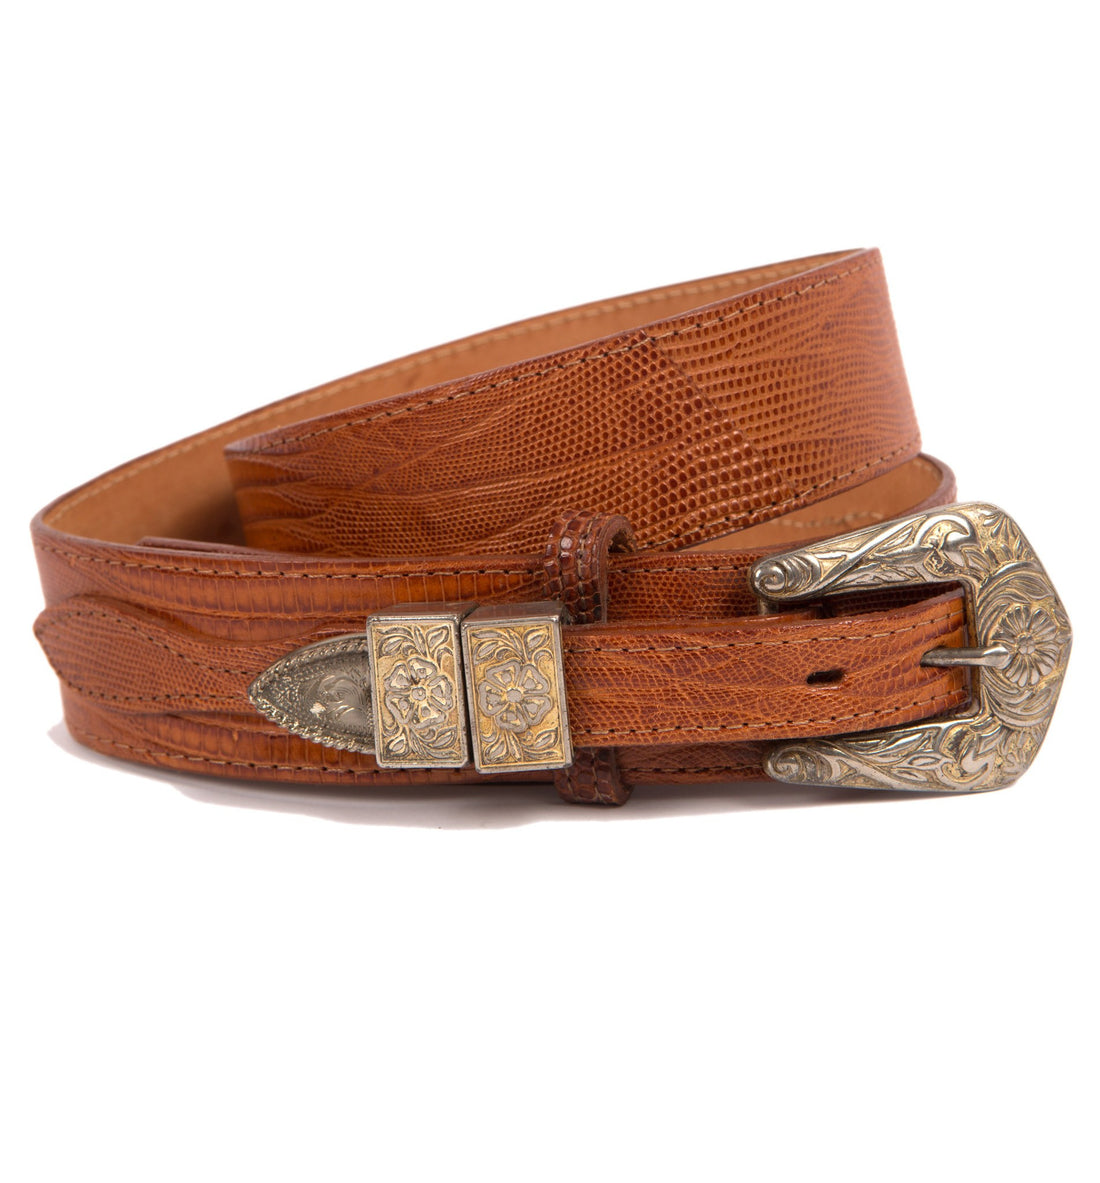 Vintage Justin Brn Lizard Skin Belt - Vintage - Iron and Resin